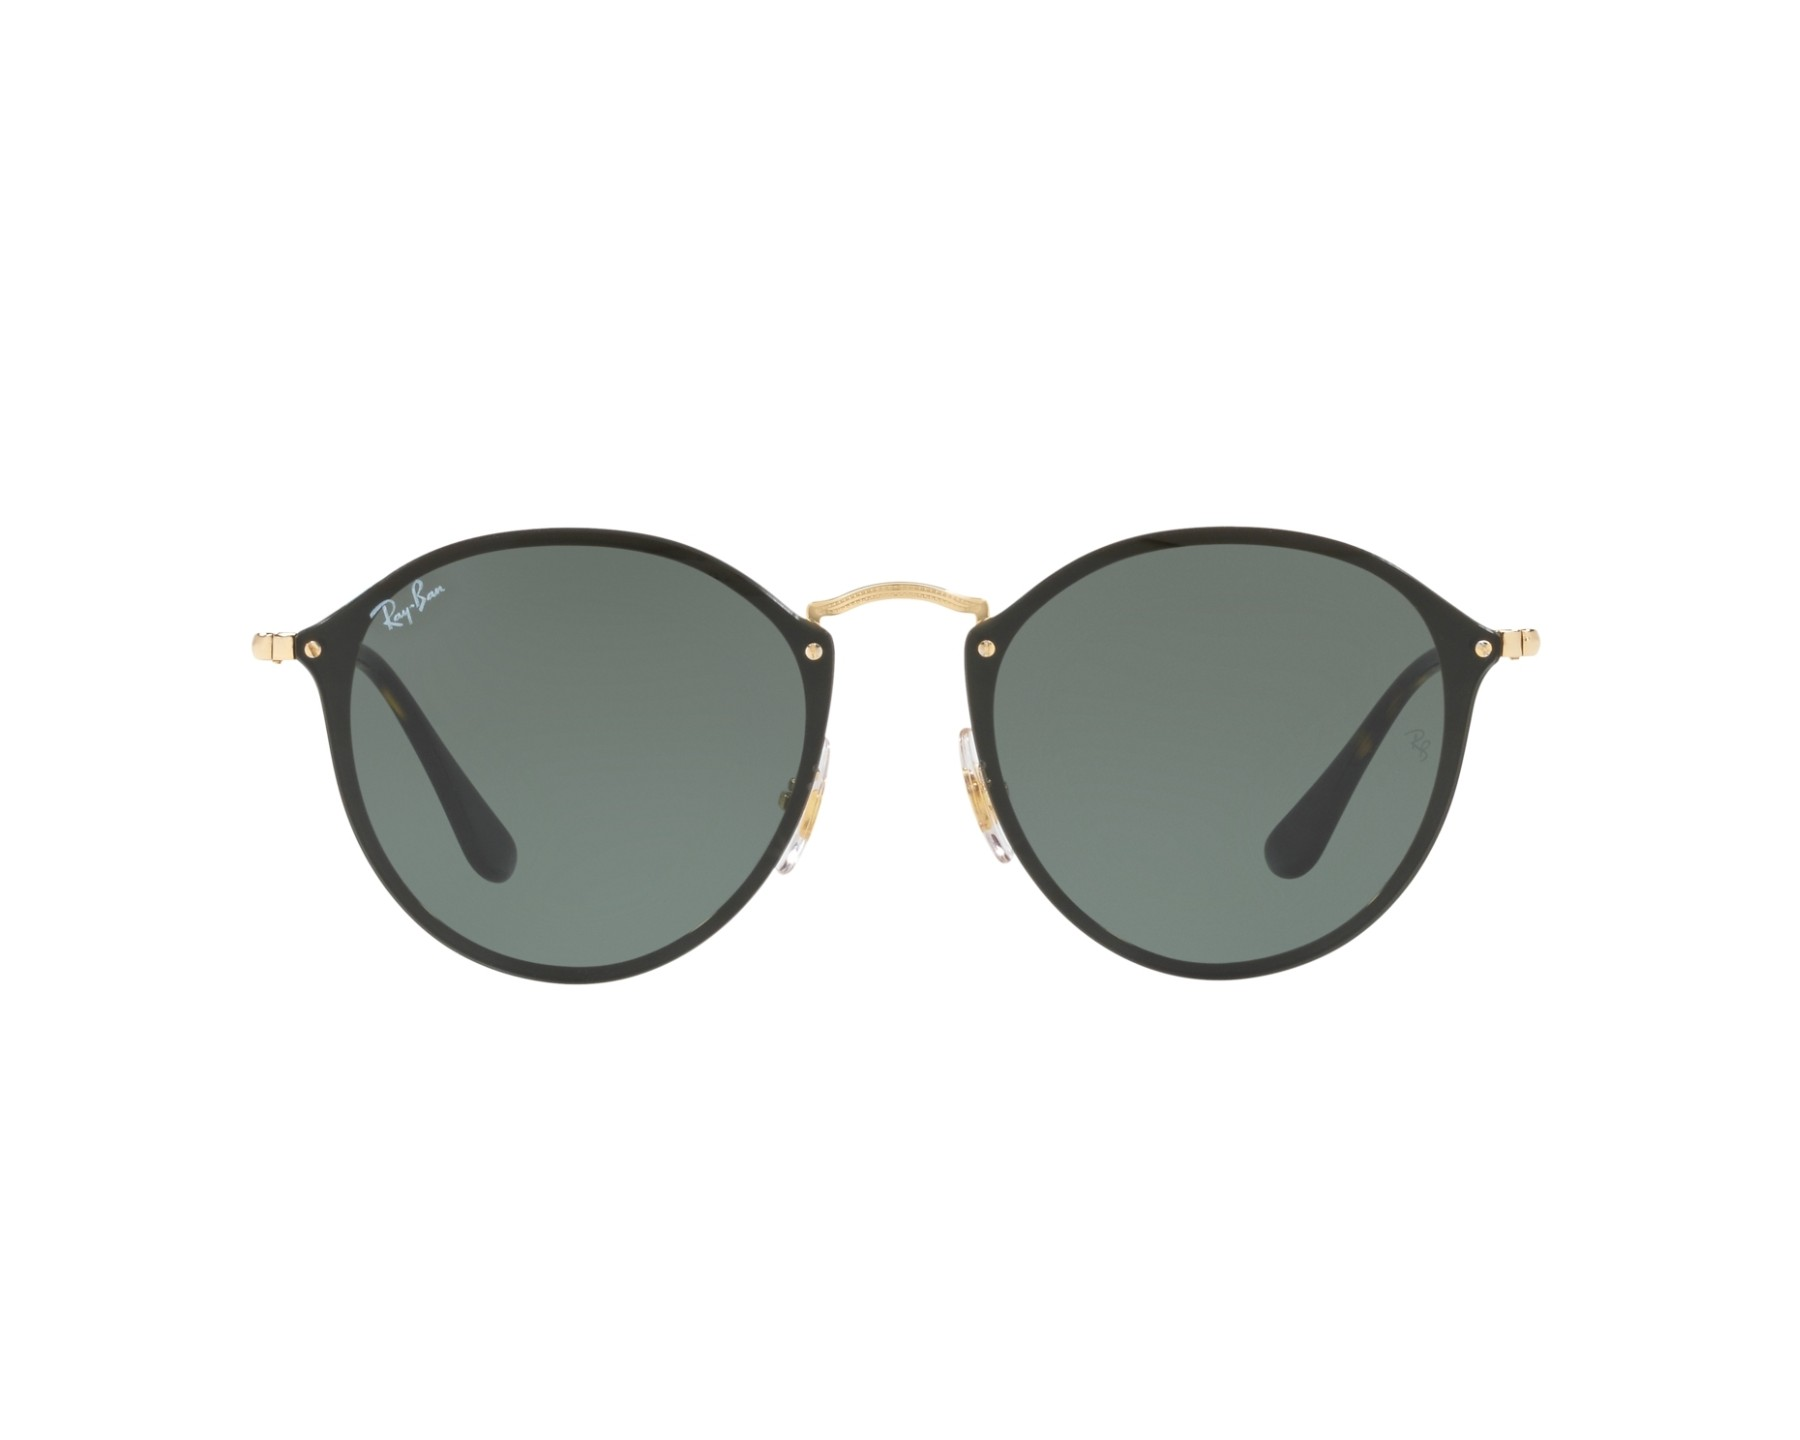 94a75162b94 Sunglasses Ray-Ban RB-3574-N 001 71 59-14 Gold